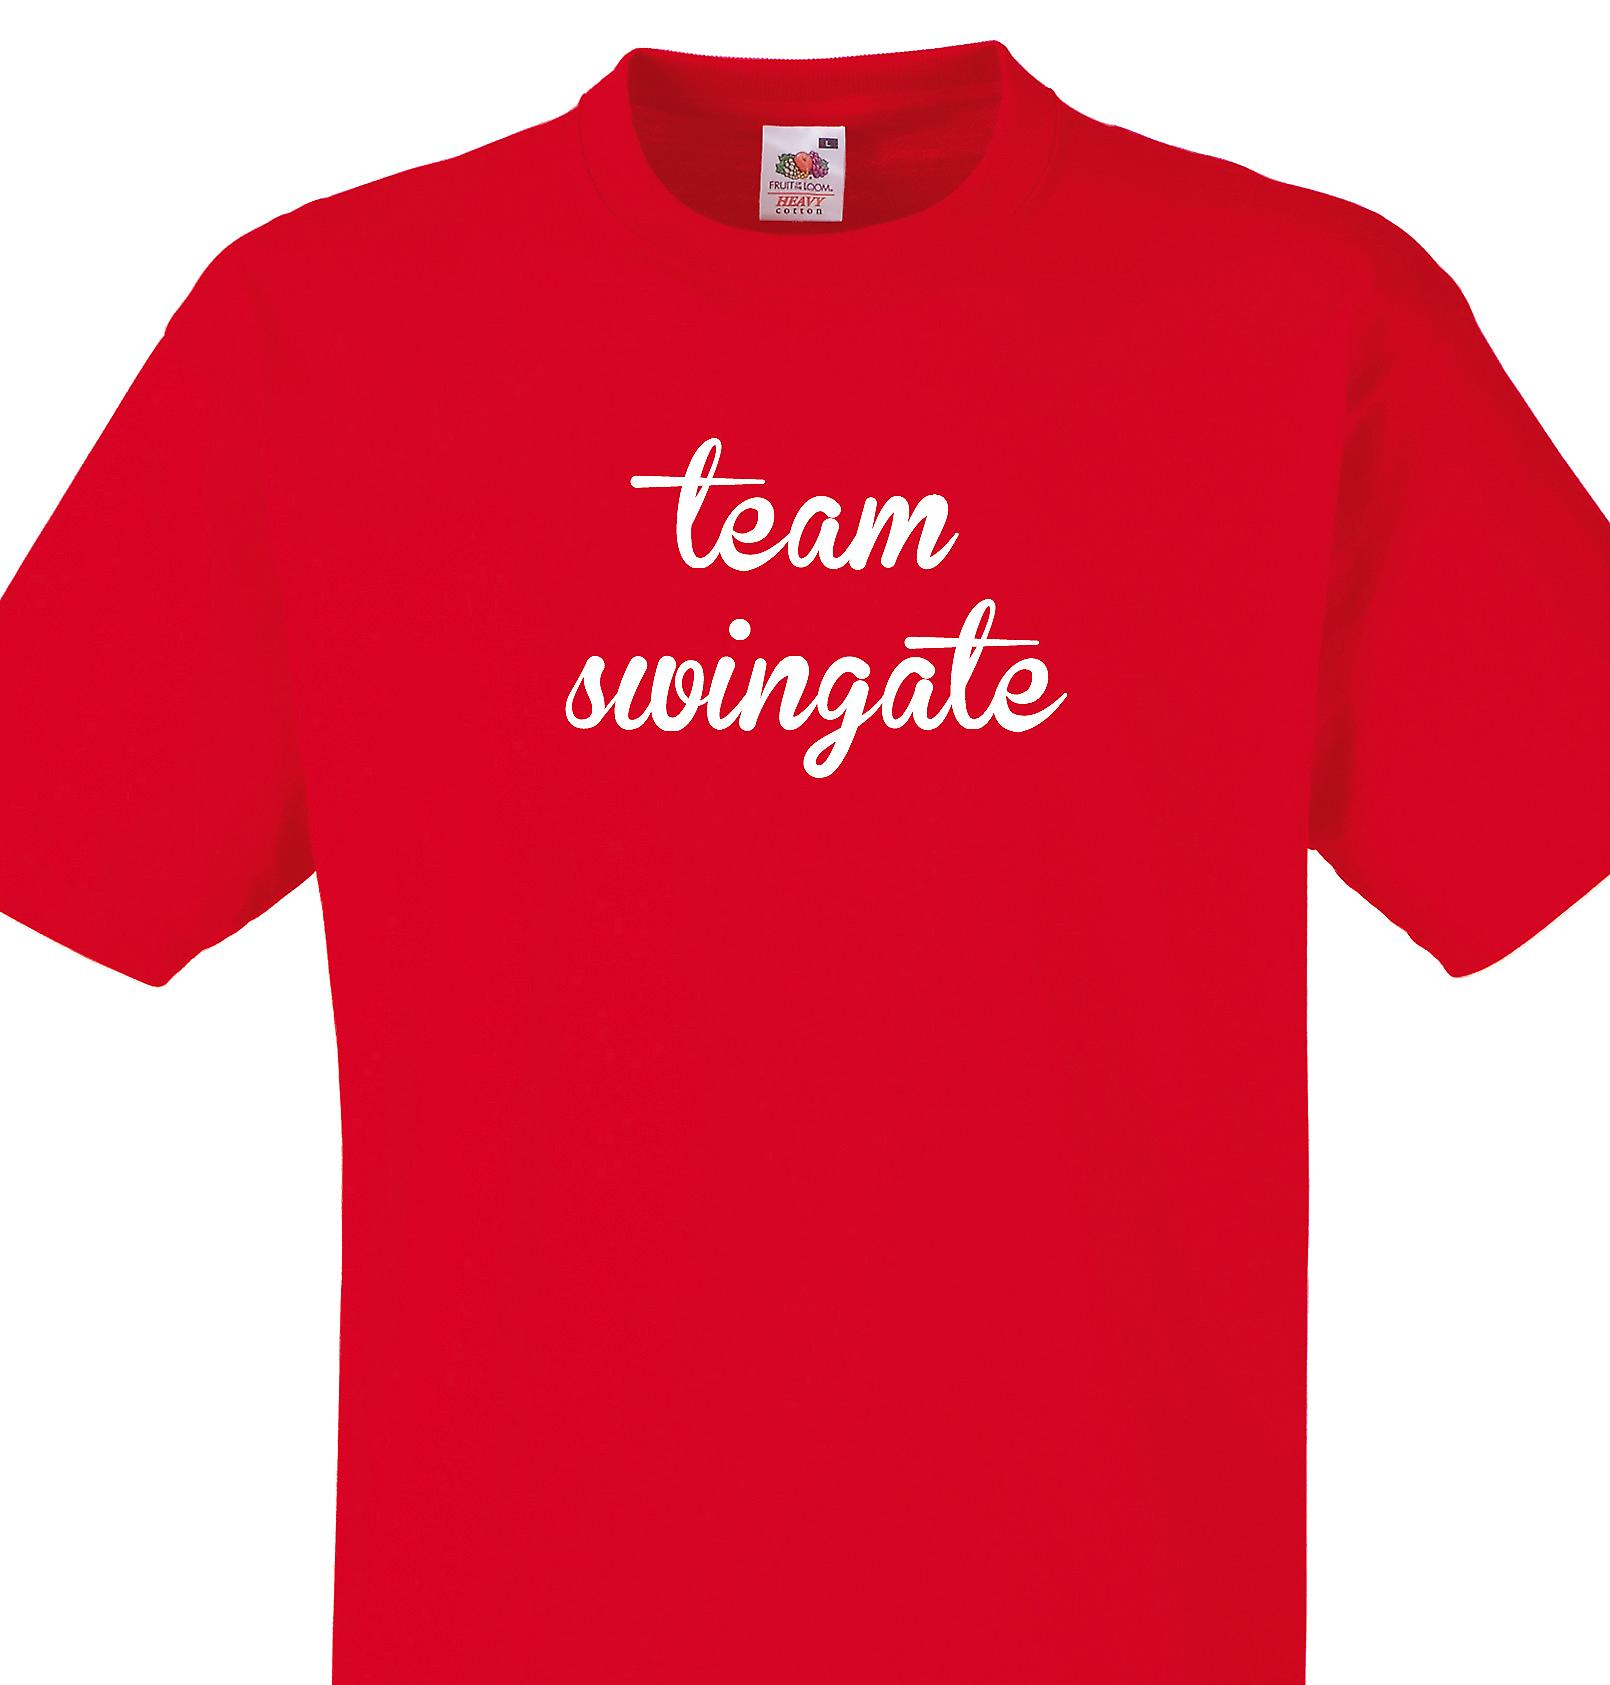 Team Swingate Red T shirt